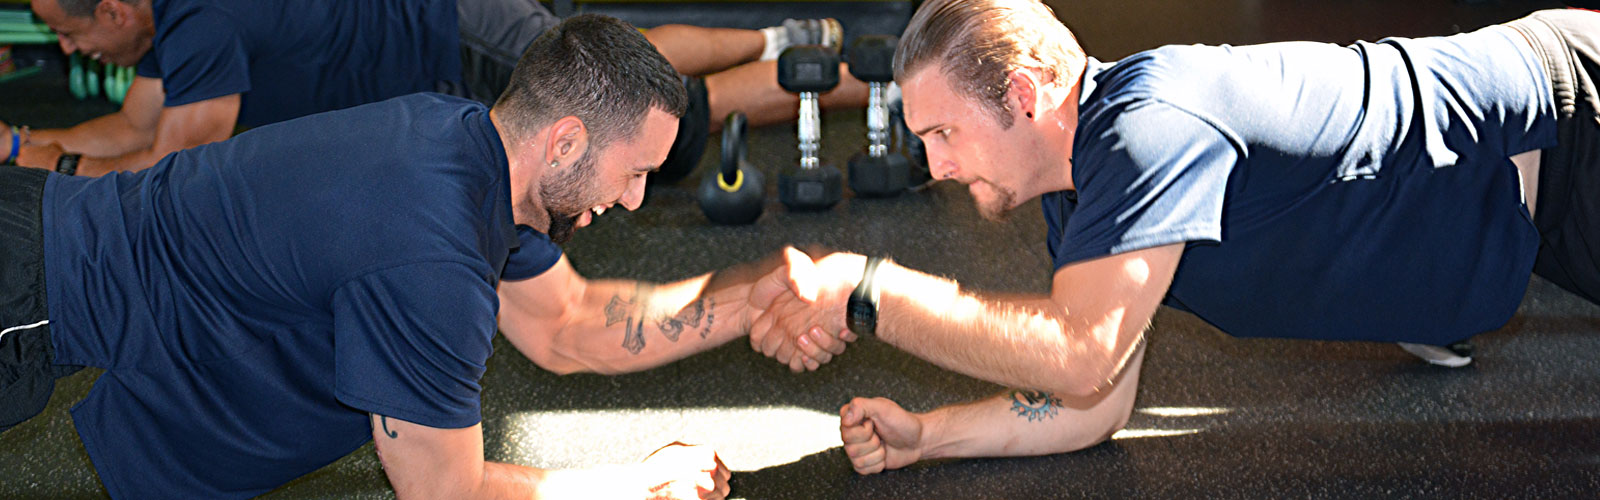 Two MTTI Personal Fitness Trainer students engaged in fitness exercise together.